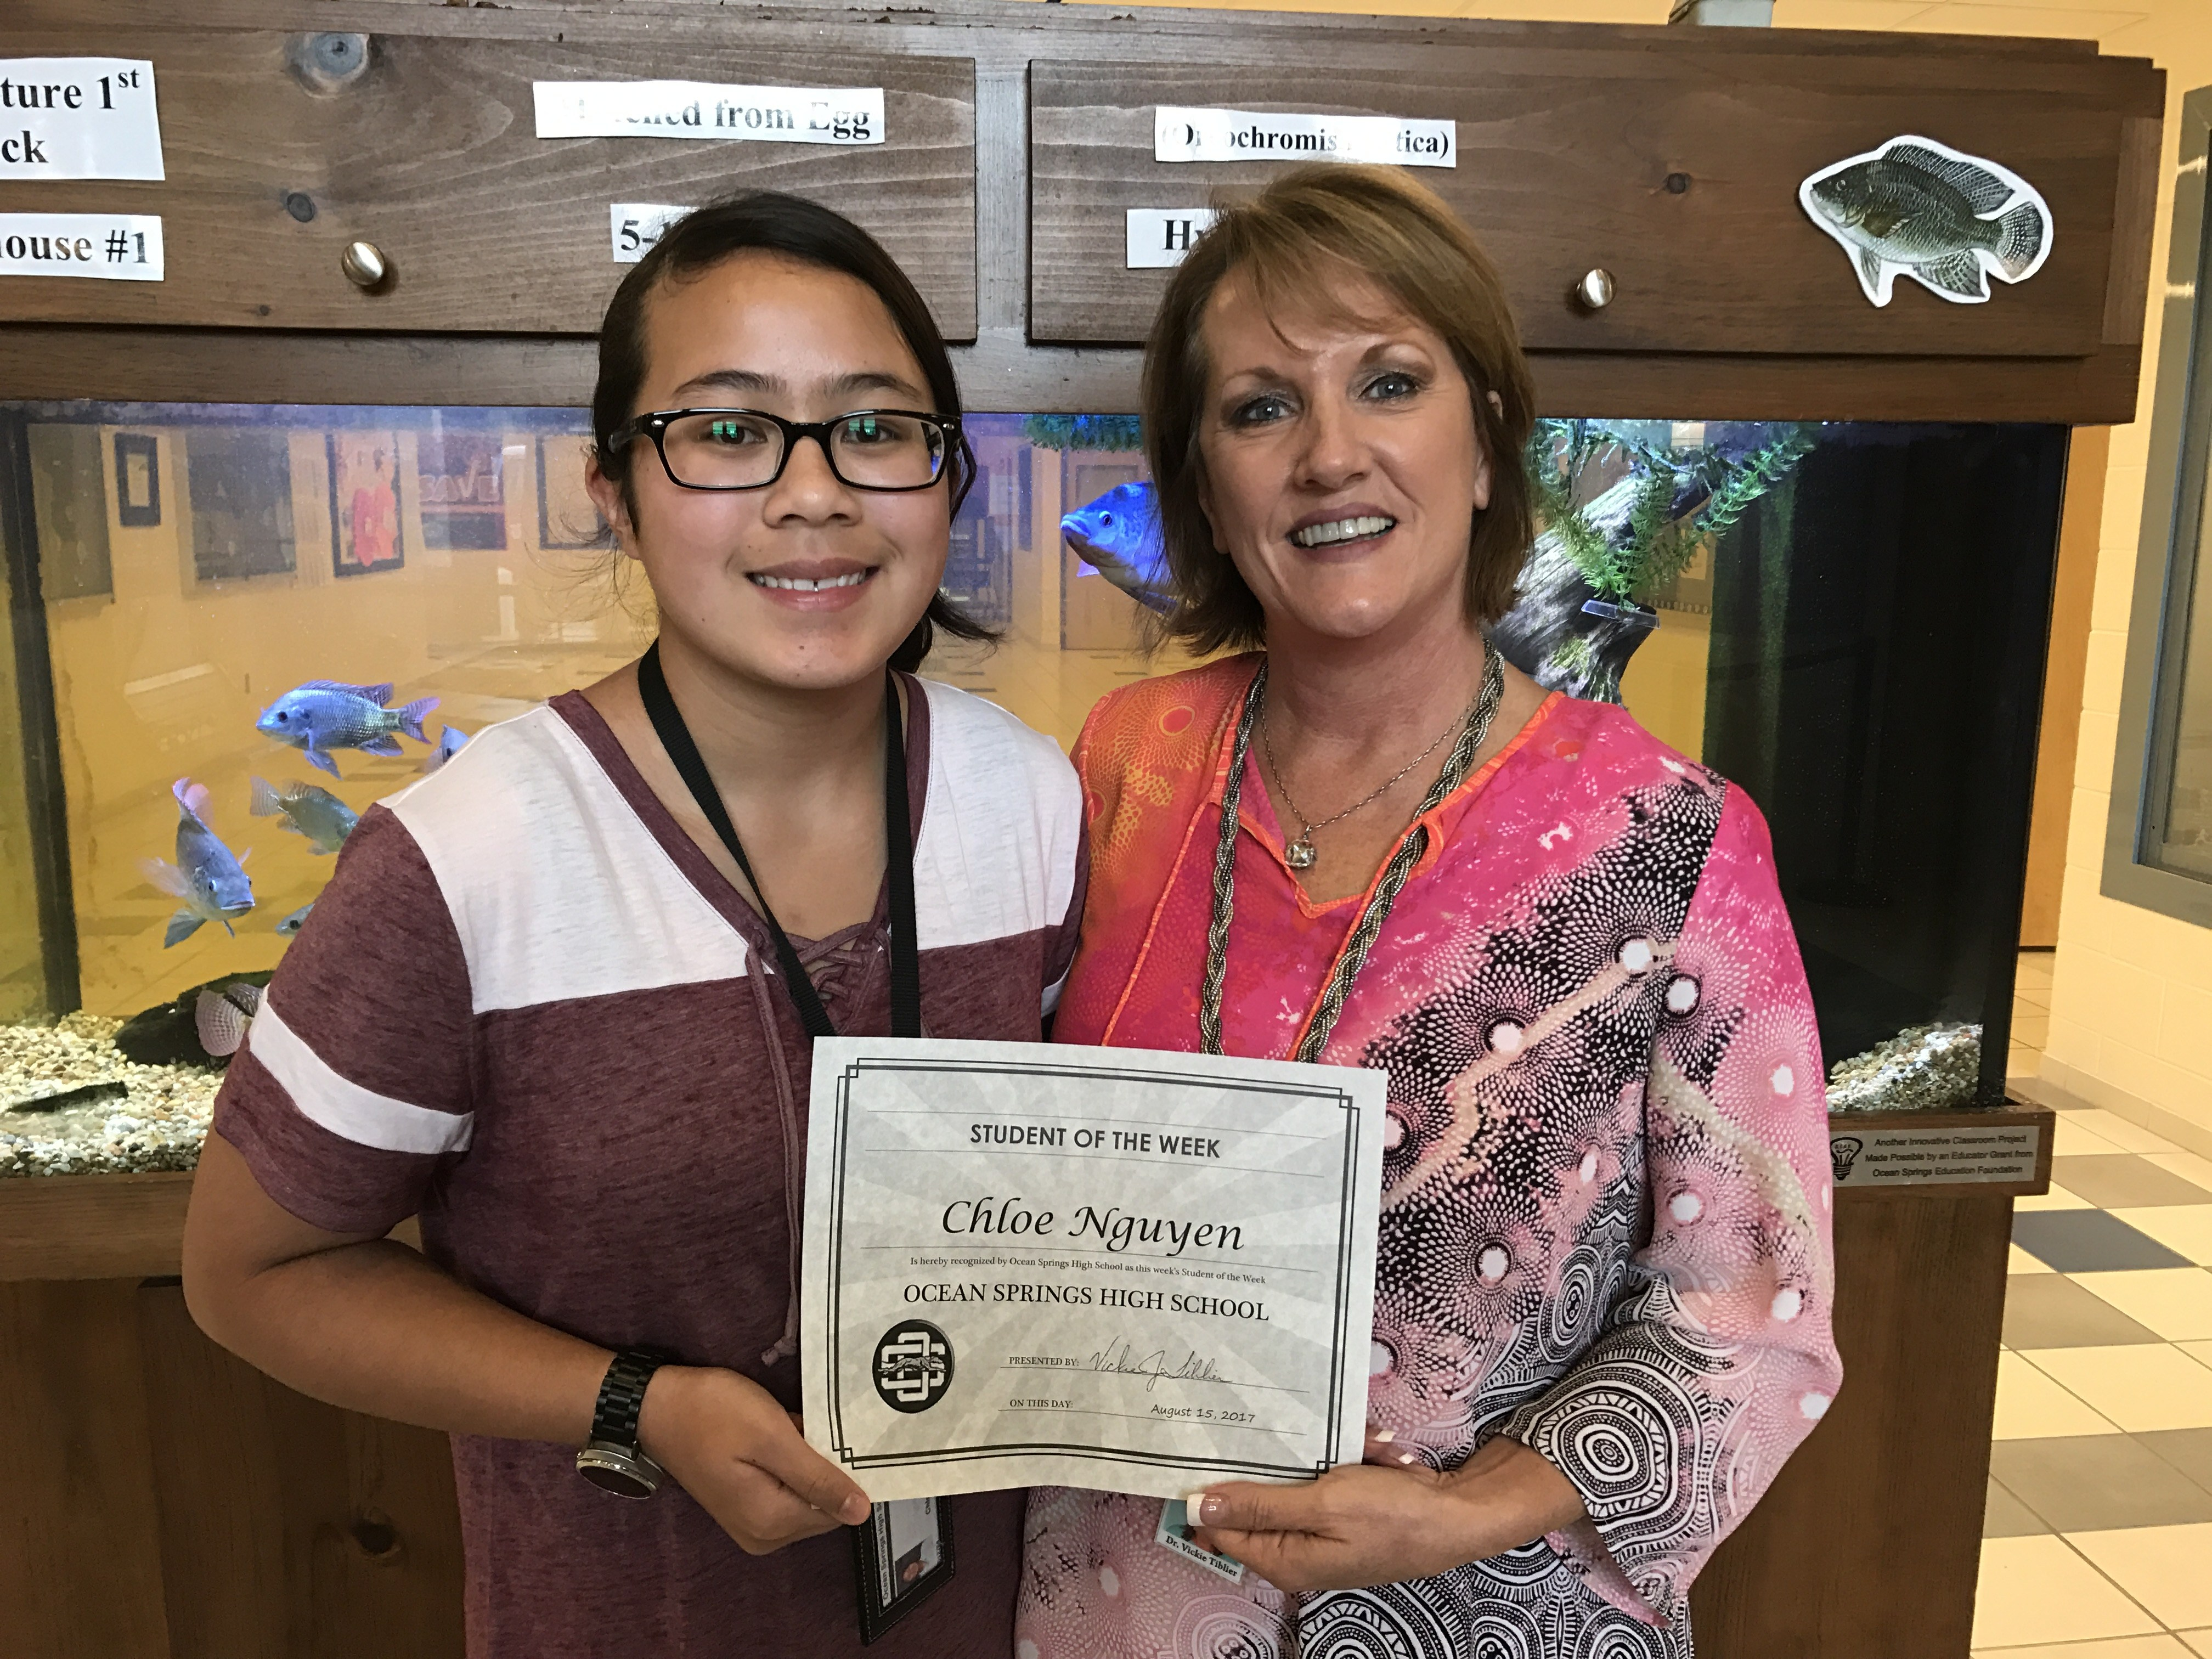 Student of the Week Chloe Nguyen receives a certificate from Dr. Tiblier.